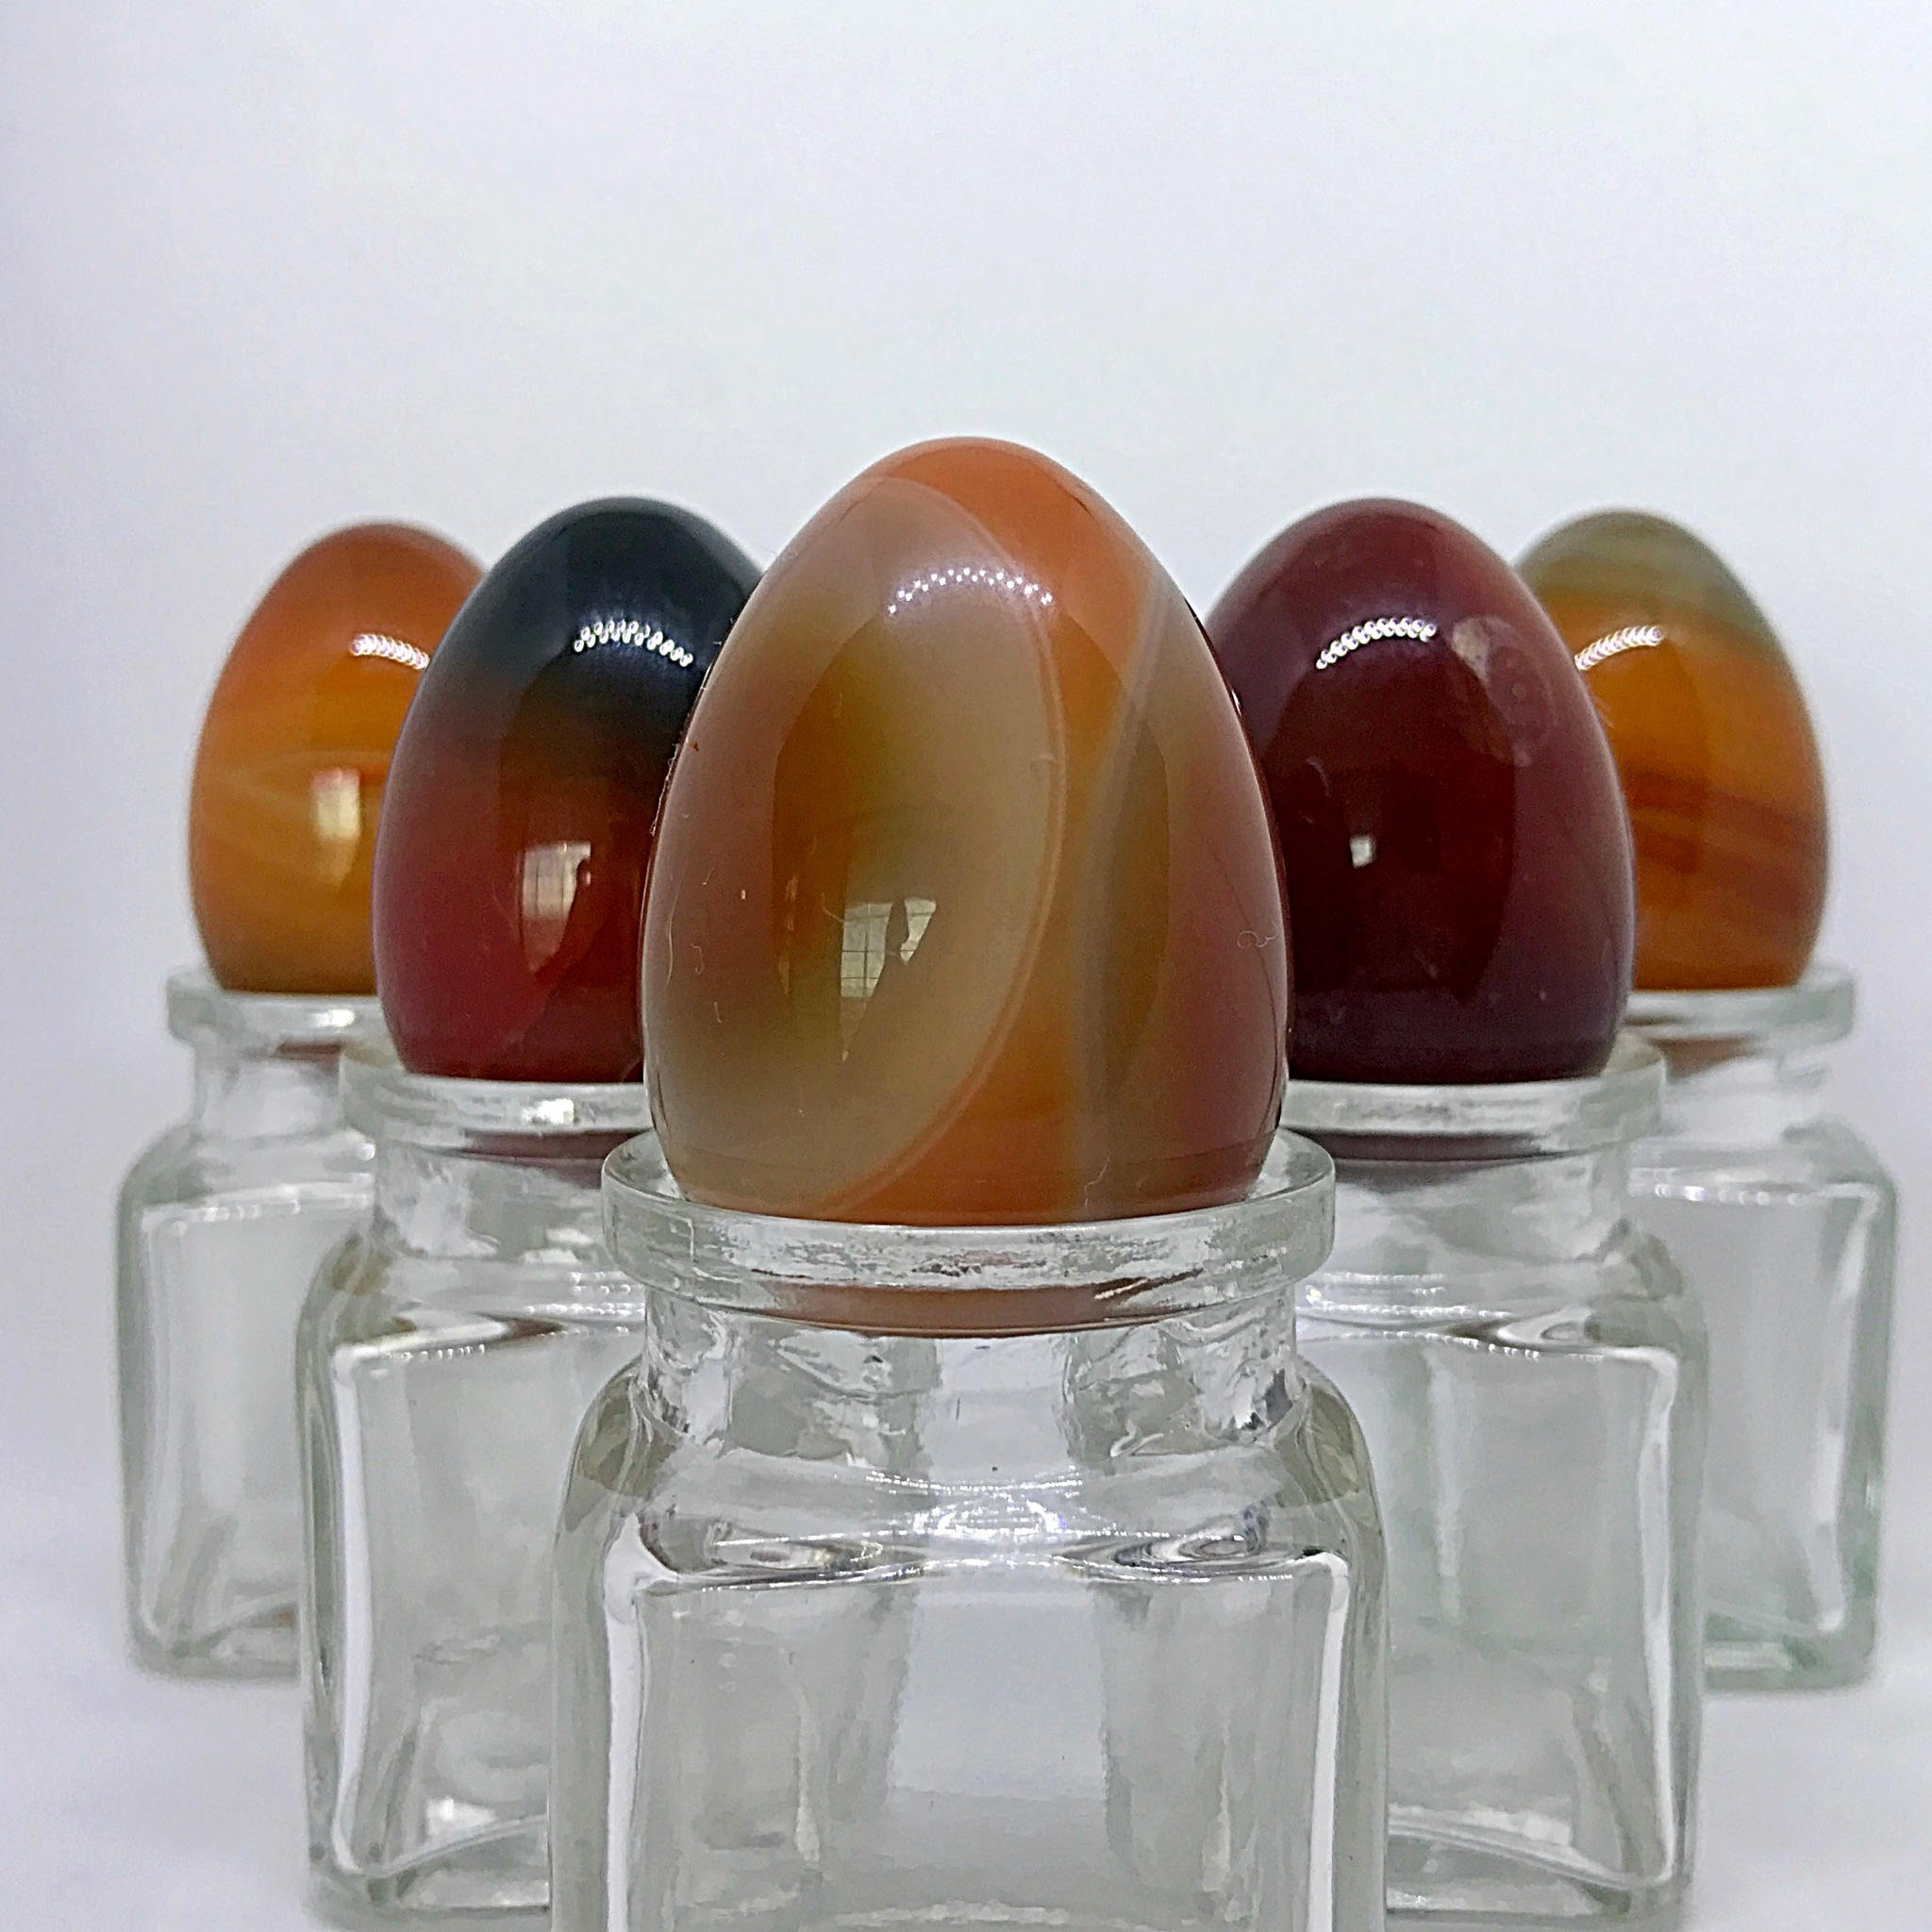 5 Medium Carnelian Yoni Eggs